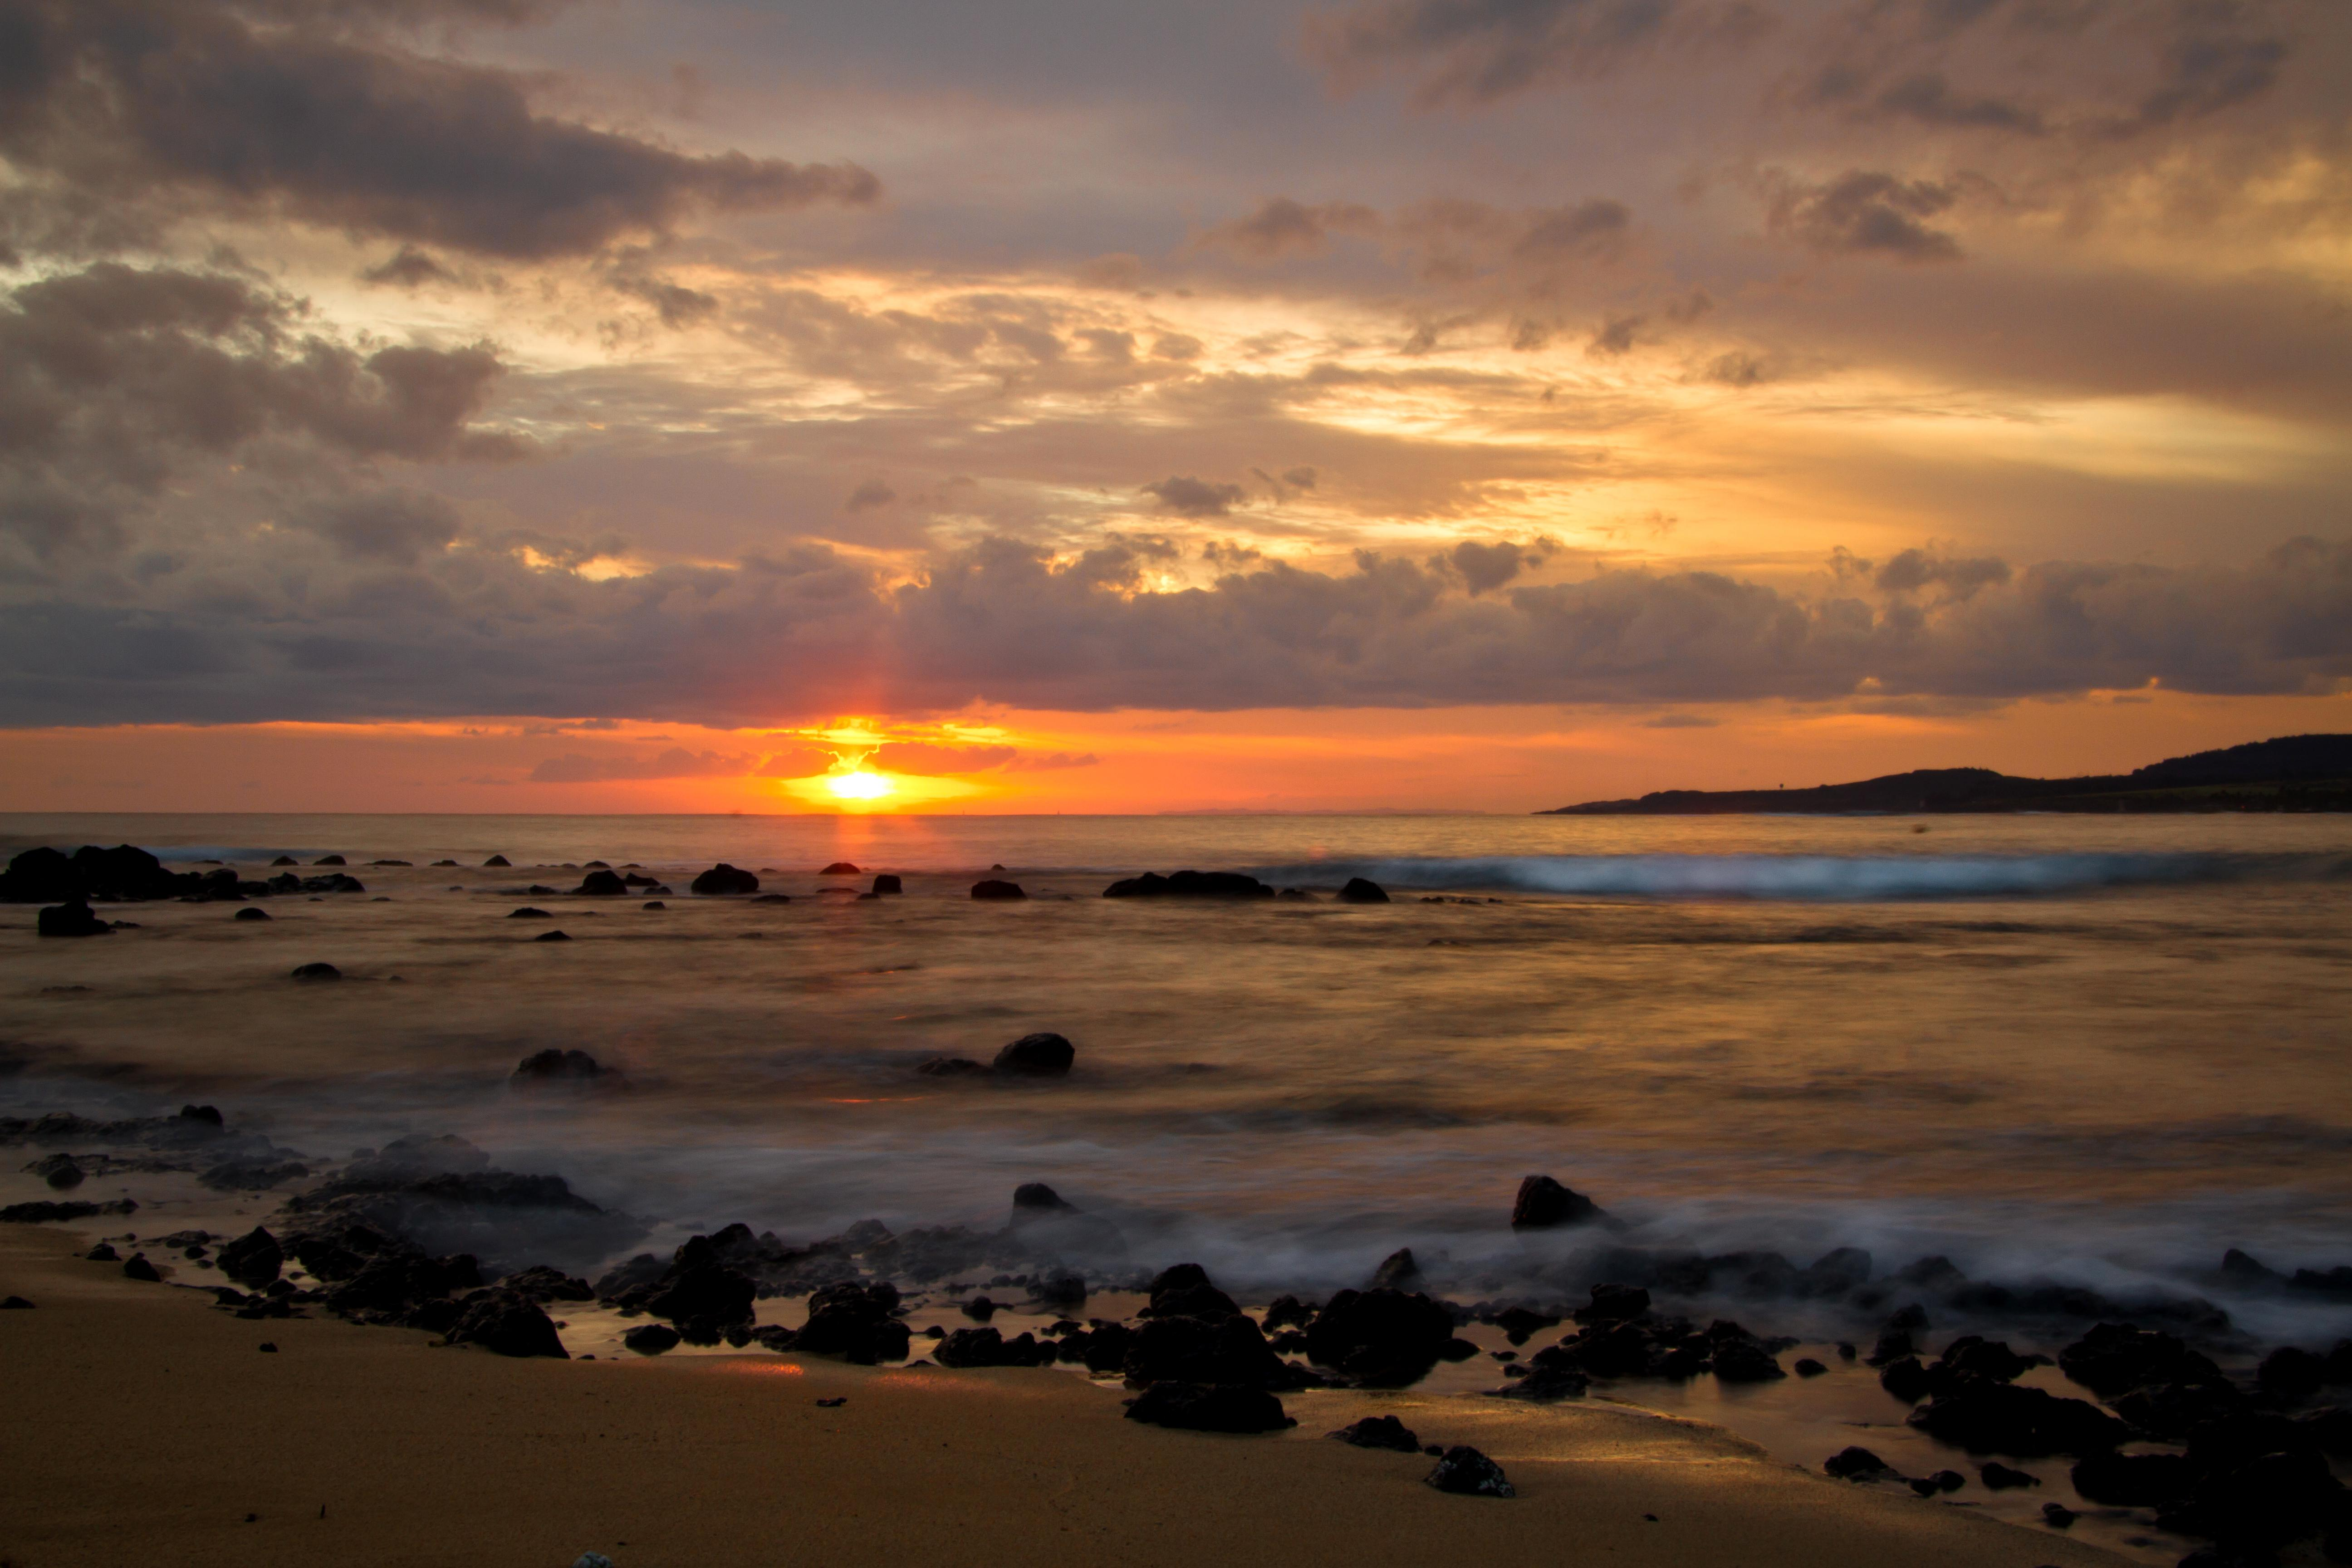 """Kauai South Shore<br/>Photo <a href=""""//creativecommons.org/licences/by-nc-nd/3.0/"""" class=""""cc-small"""" target=""""_blank""""><img typeof=""""foaf:Image"""" class=""""image-style-none"""" src=""""https://i.creativecommons.org/l/by-nc-nd/3.0/80x15.png"""" width=""""80px"""" height=""""15px"""" alt=""""Creative Commons Licence"""" /></a> <a href=""""http://www.flickr.com/photos/smoovey/8556974919/"""">Alan Strakey</a>"""